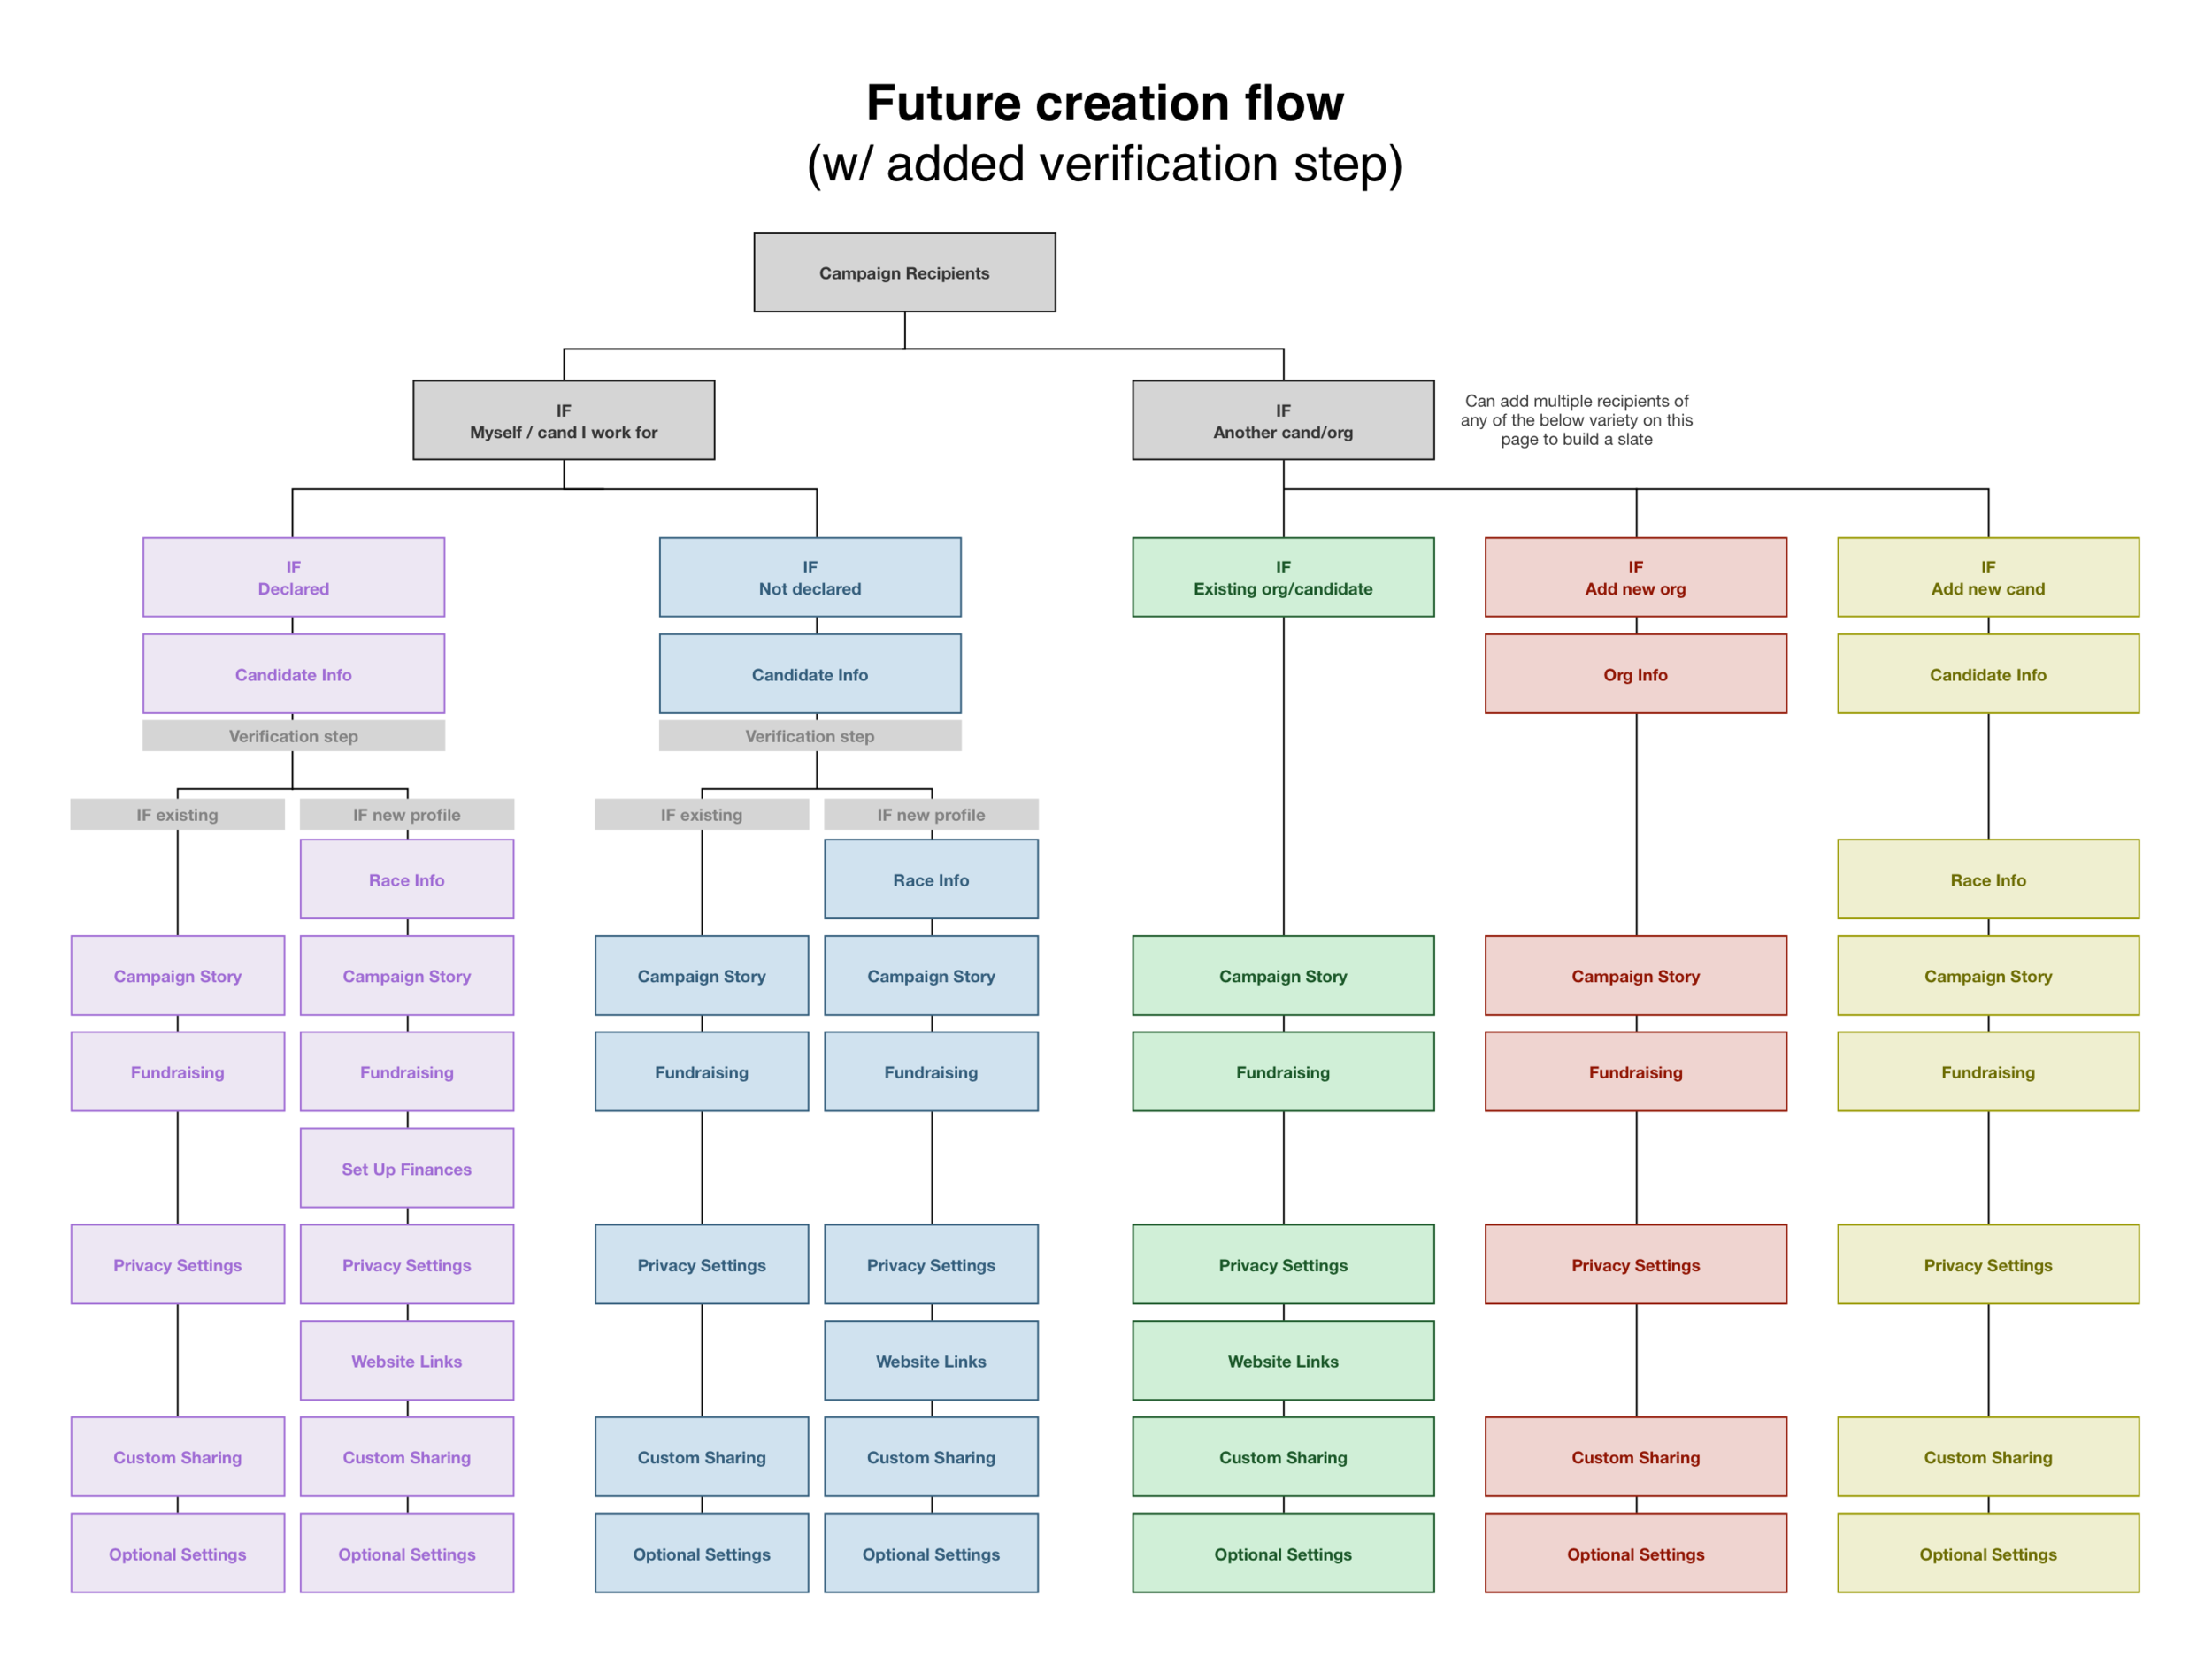 It was clear that we needed a system that was flexible enough to accommodate the vast diversity of use cases of our platform, so using visuals to map out the branches of the proposed campaign creation flow highlighted its flexibility and ability to accommodate all use cases.